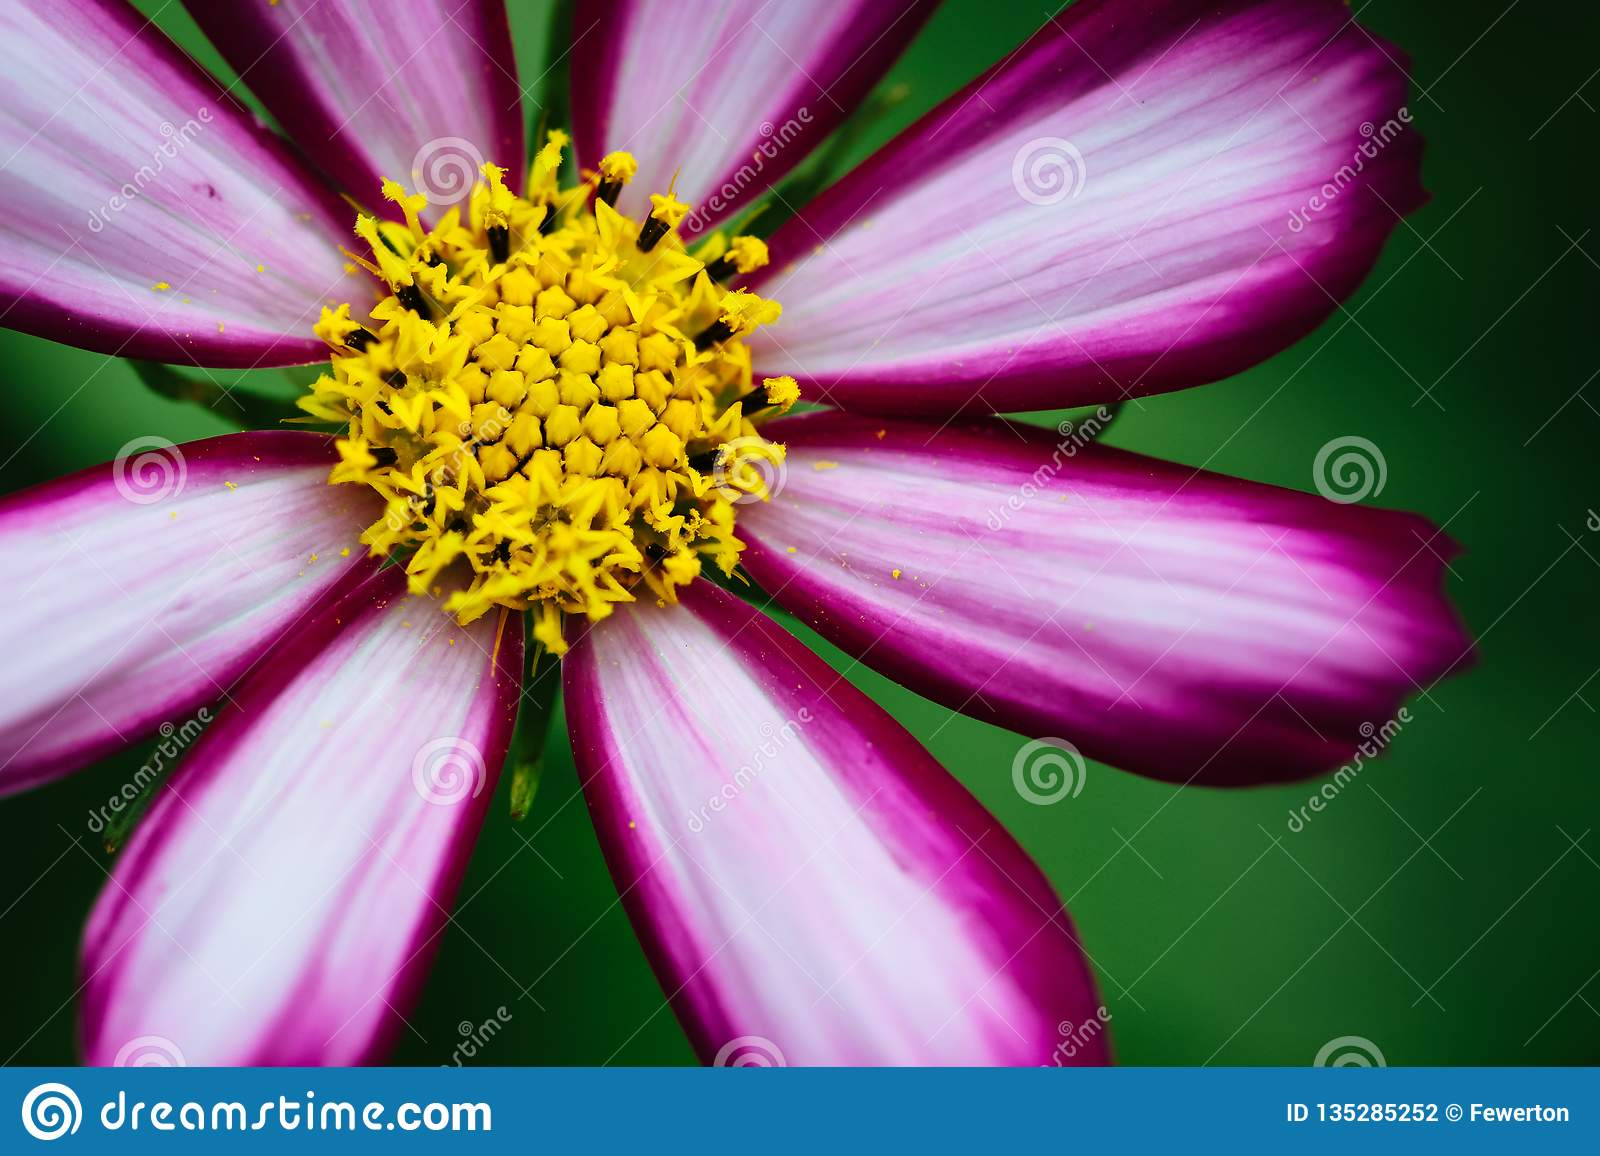 "Purple, white, vivid pink wild flower ""Wild Cosmos Flower"" Cosmos bipinnatus blooming during Spring and Summer"